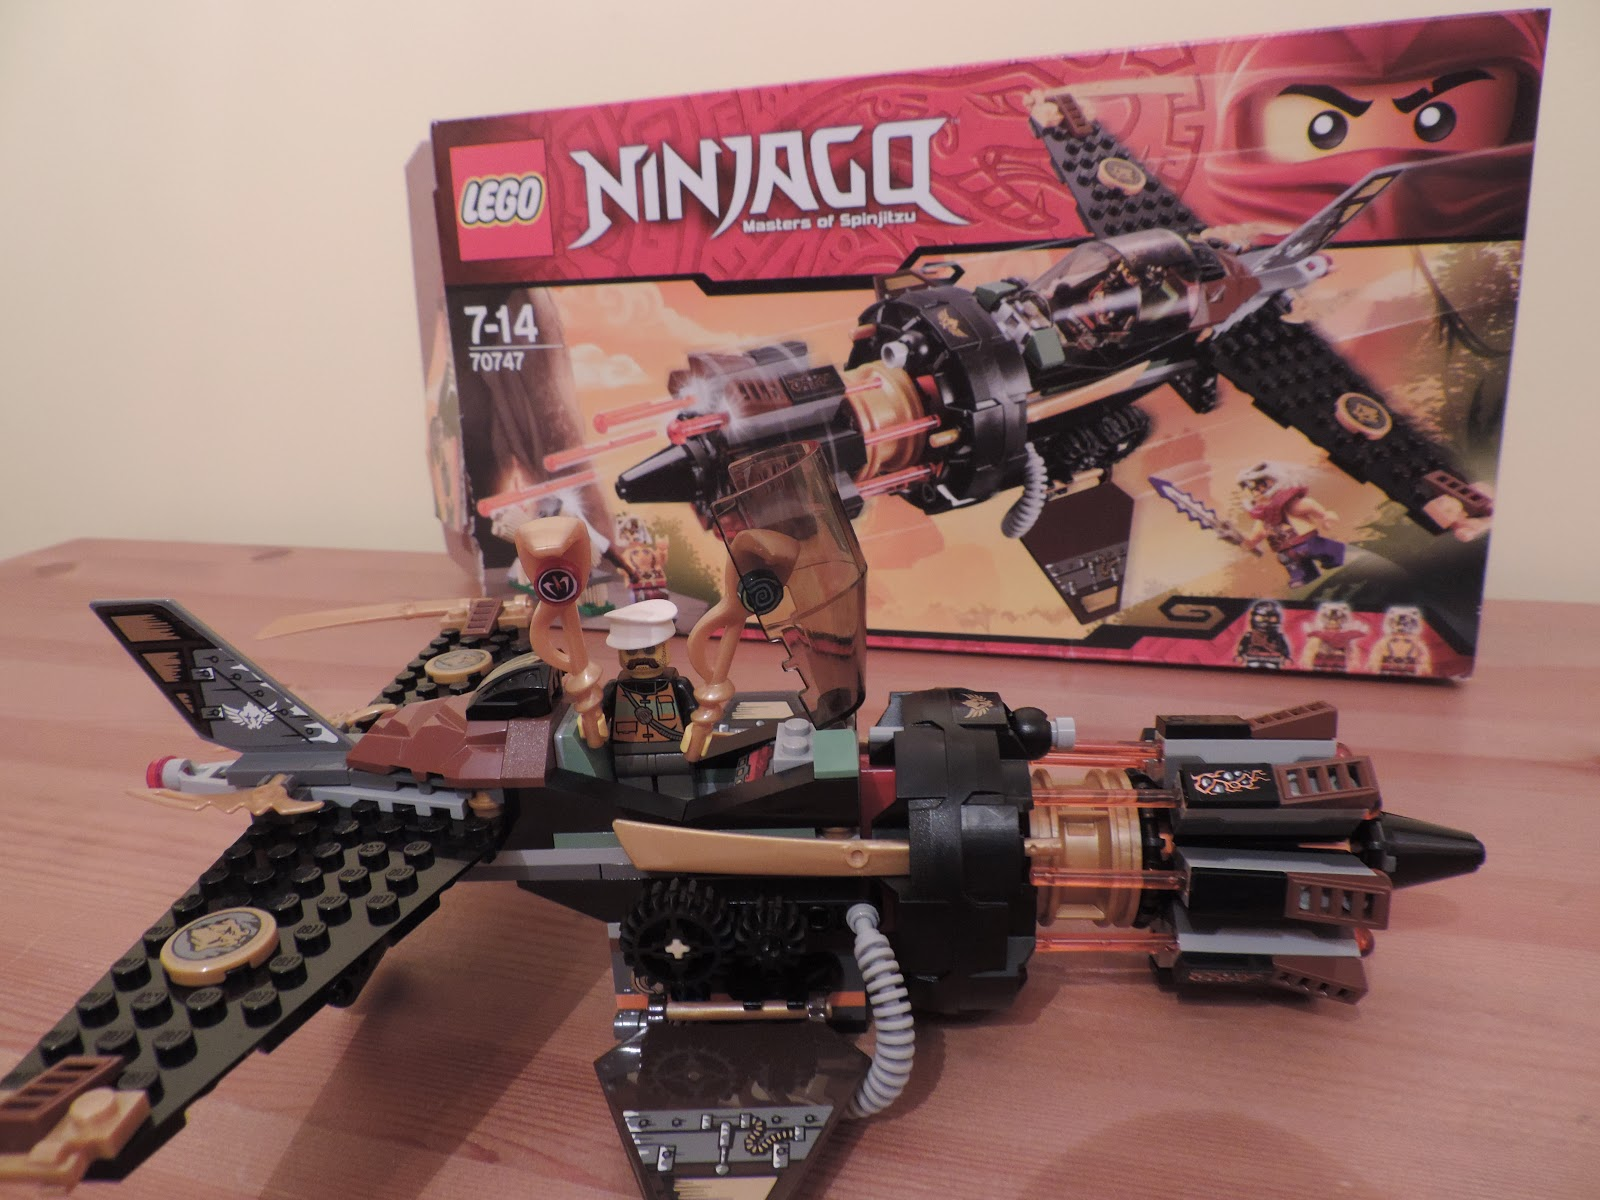 lego ninjago model plane gay icon manchester moustache